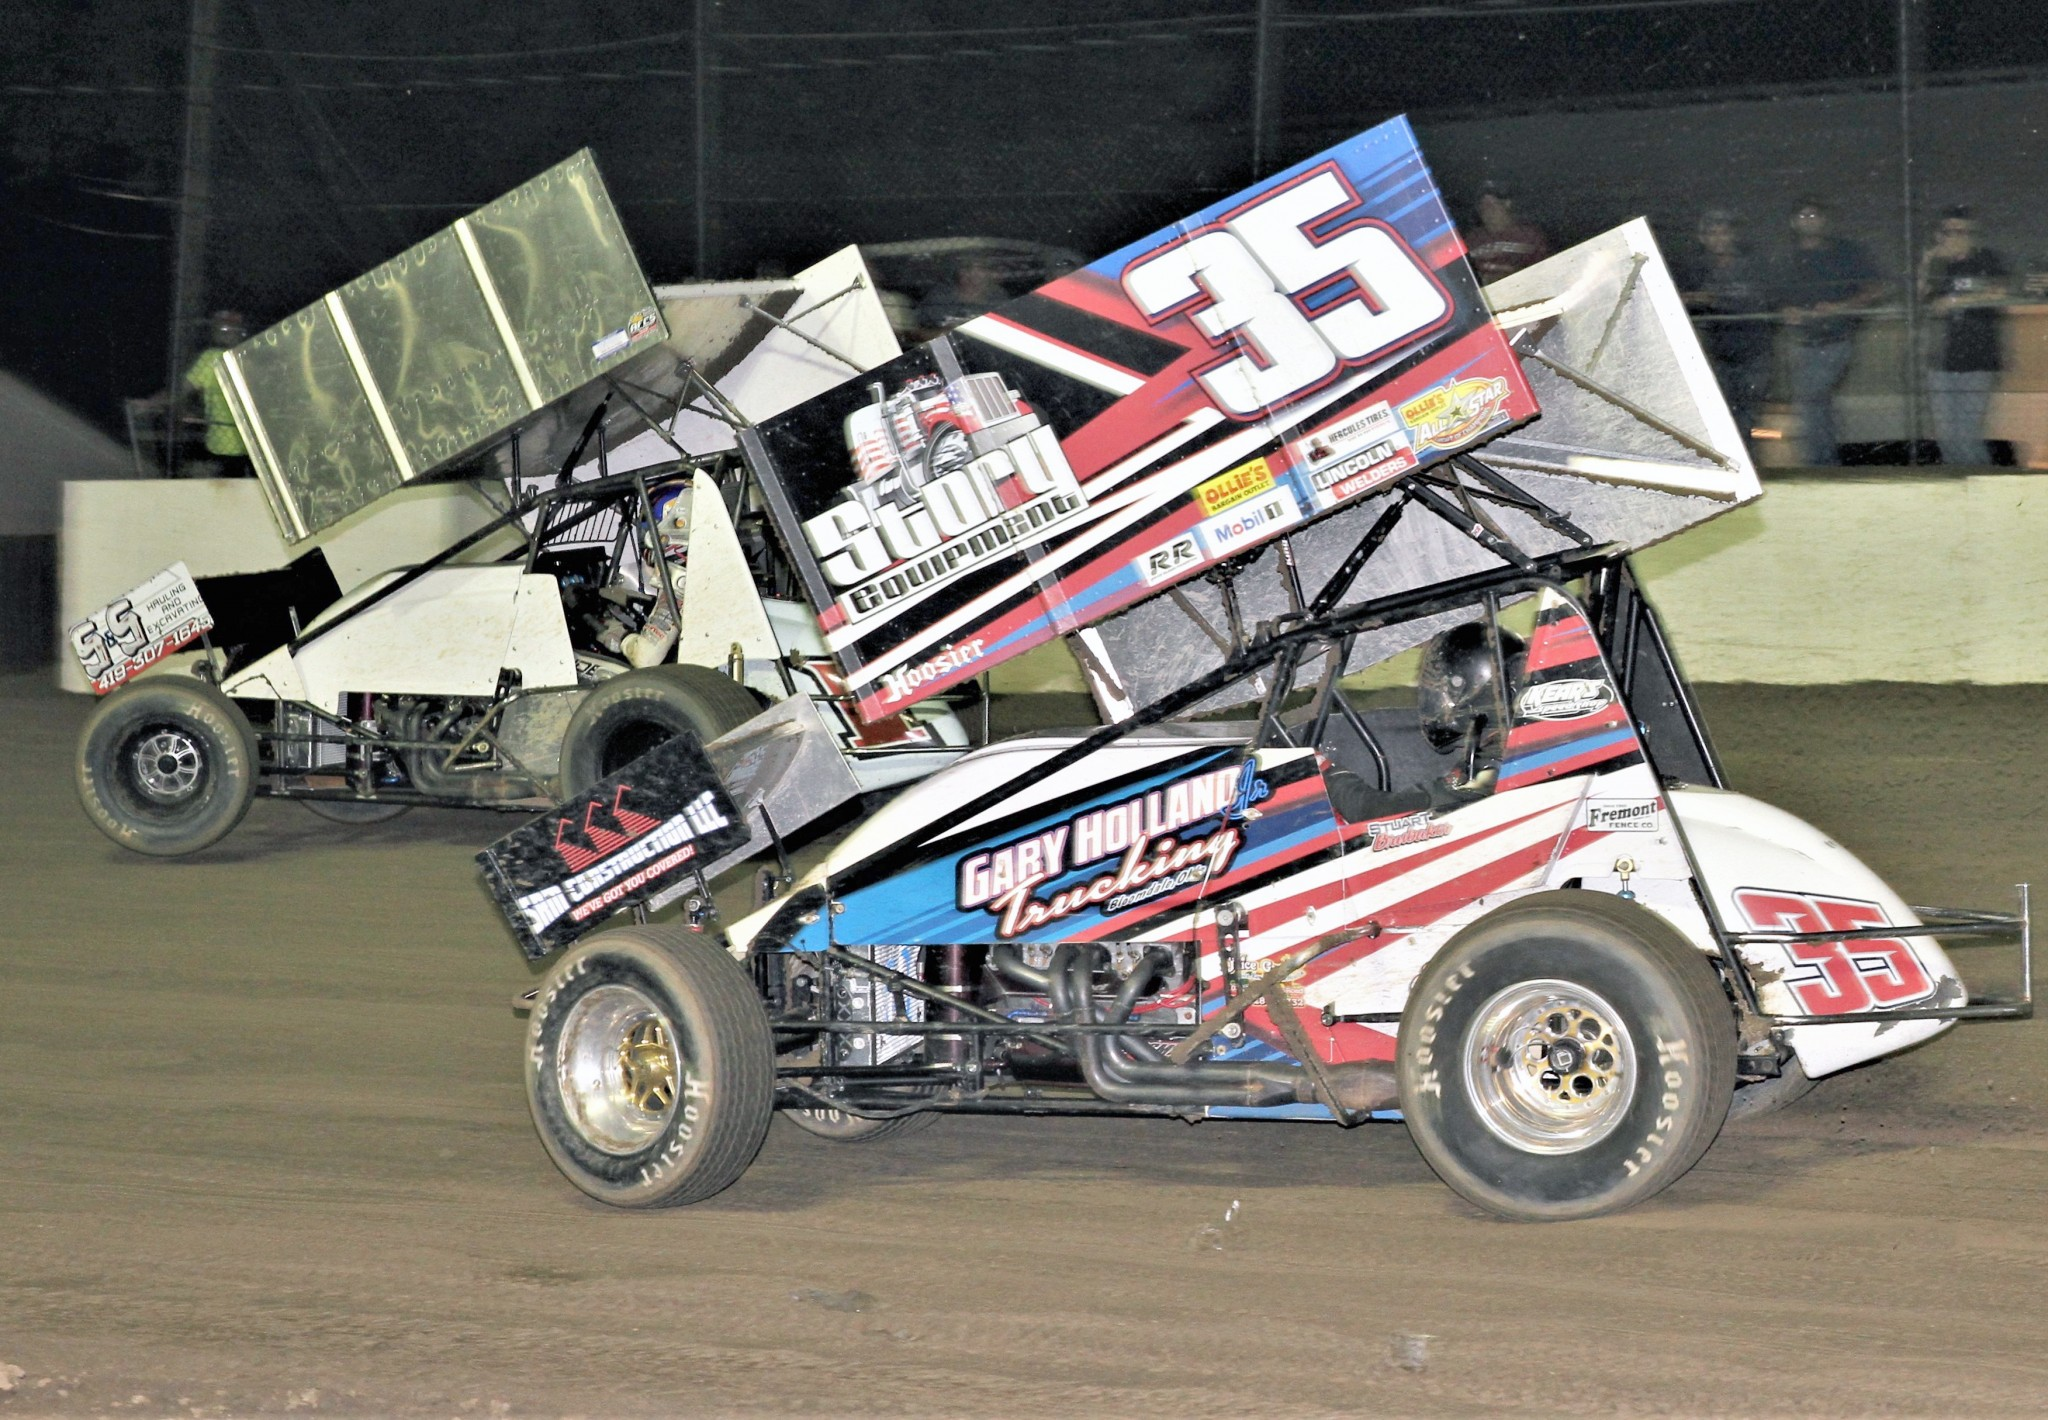 Nate Dussel (1) and Gibsonburg-Helena area native Stuart Brubaker (35) battle for the lead with Dussel motoring away to win the AFCS 410 Sprints feature and $5,000 at Fremont Speedway. Brubaker was second. (Photo by Rick Sherer)